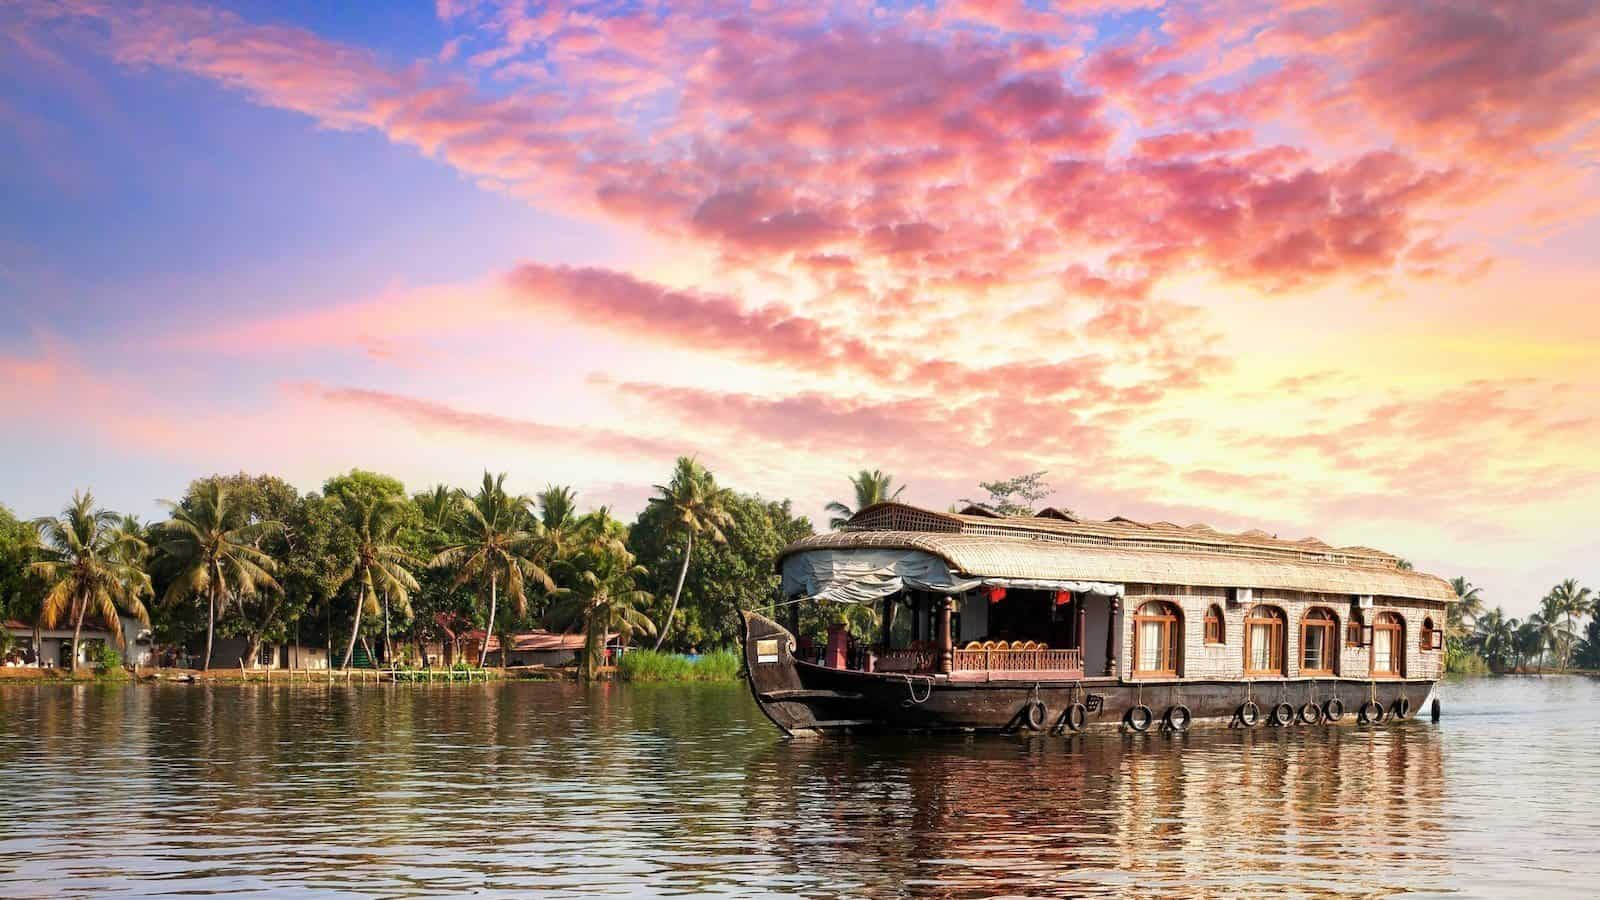 A Guide for Kerala Houseboat Trip – One of The World's Best Cruises